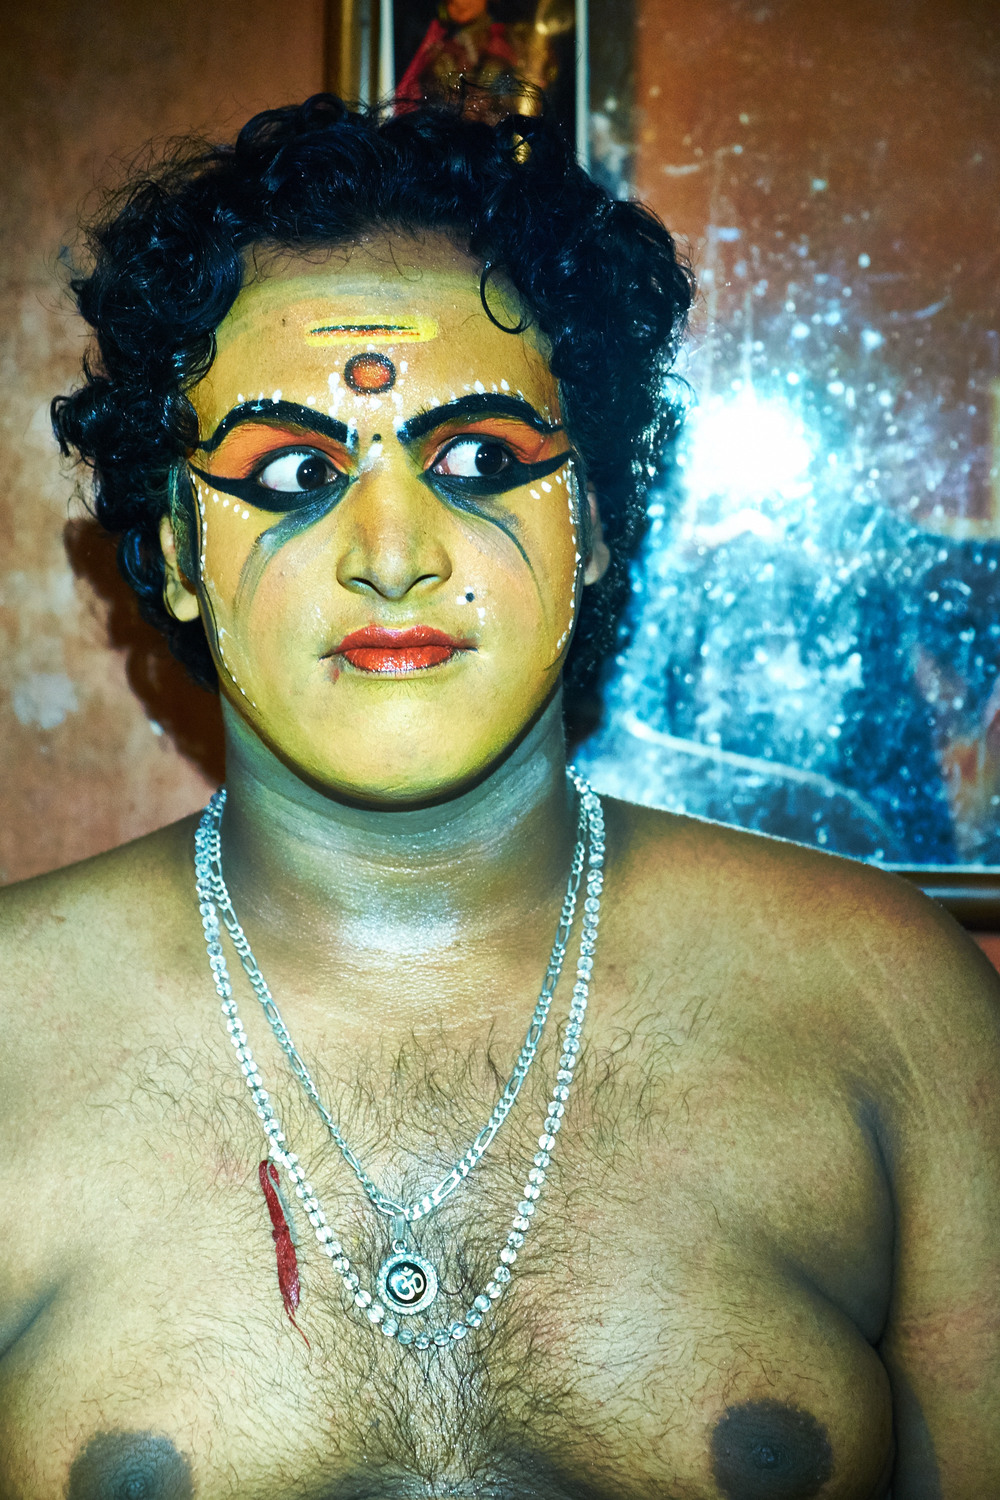 christopher-melton-kathakali-12